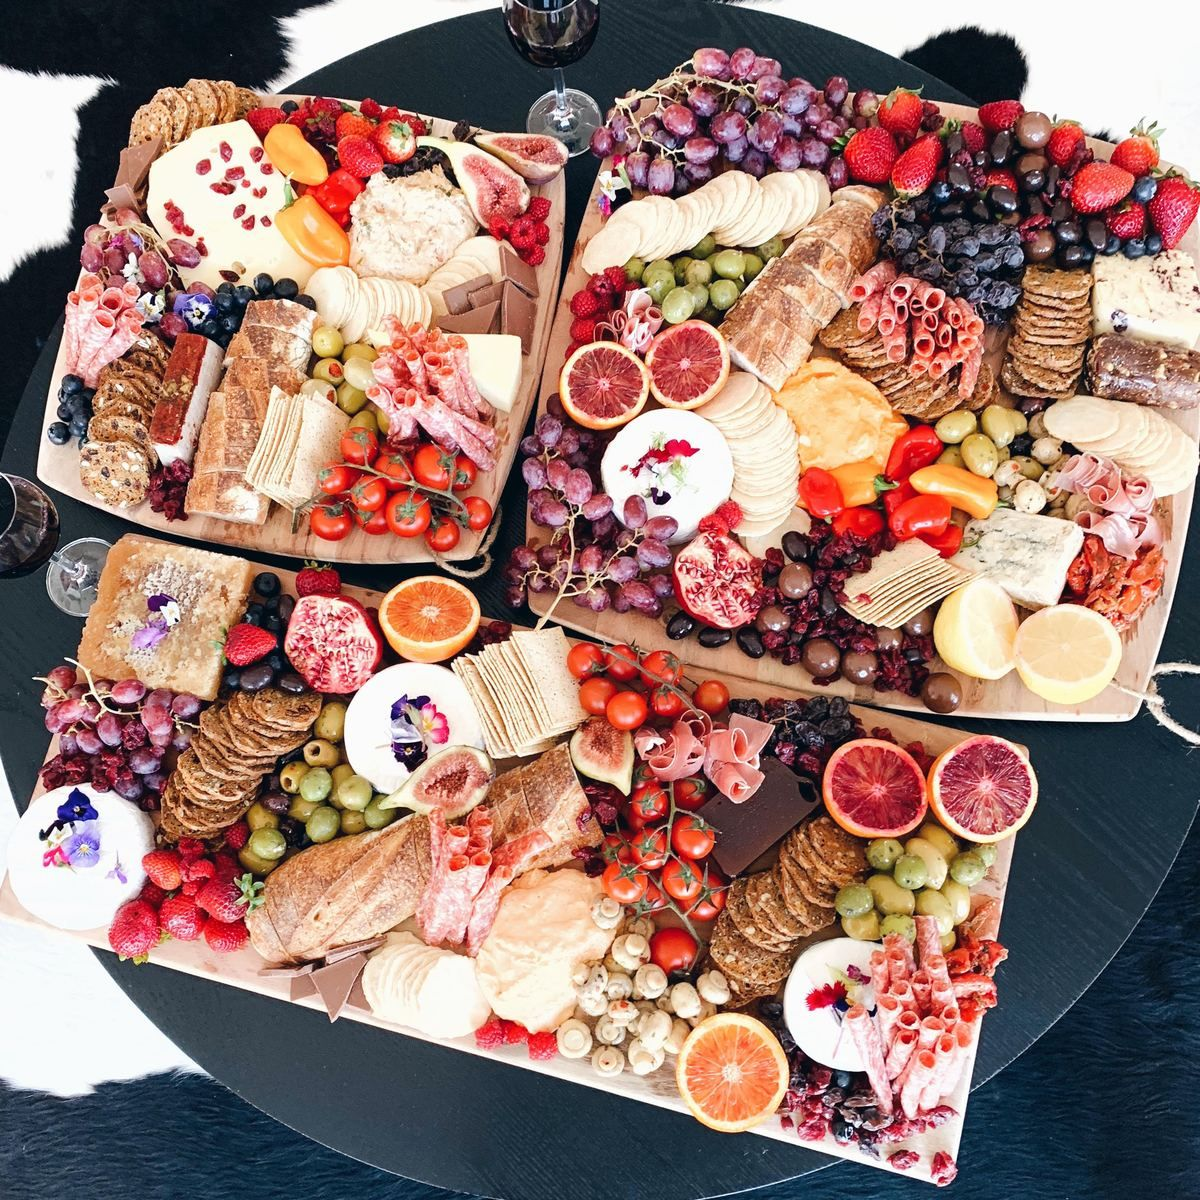 Pin By Susan Wood On Charcuterie Platter Party In 2020 Diy Cheese Platter Food Grazing Tables